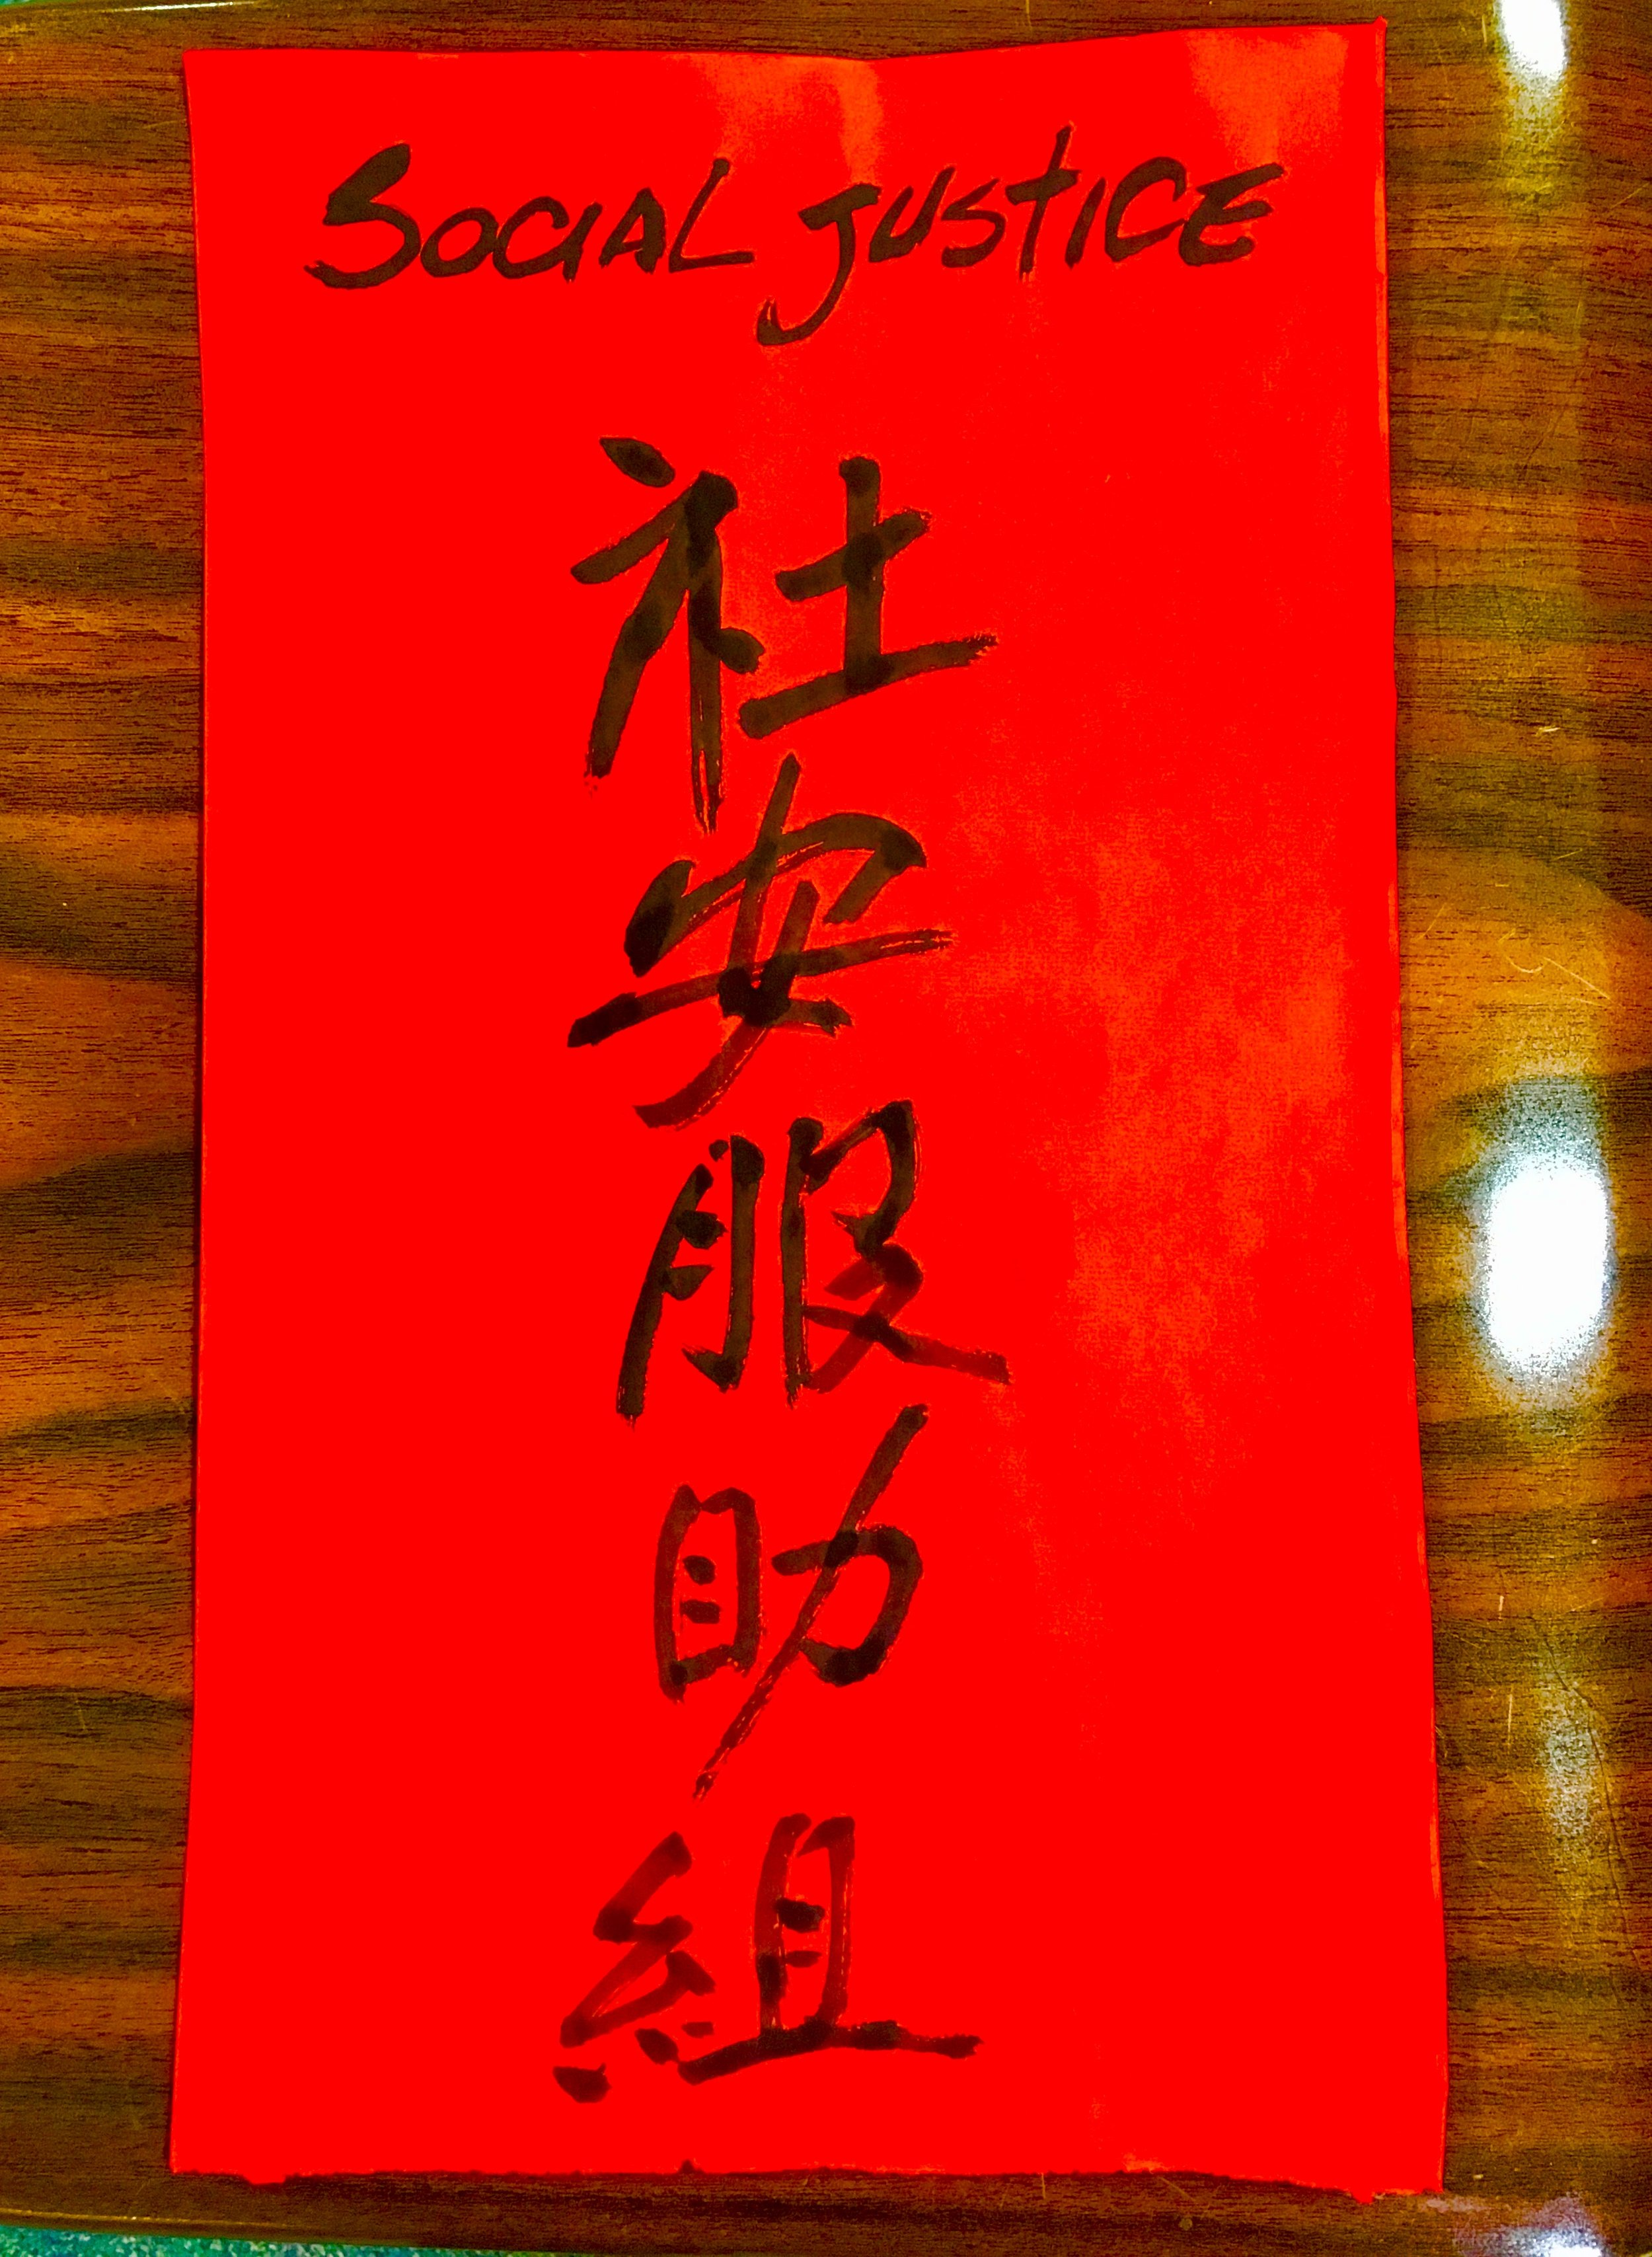 BRCSJ Social Justice Chinese calligraphy.JPG